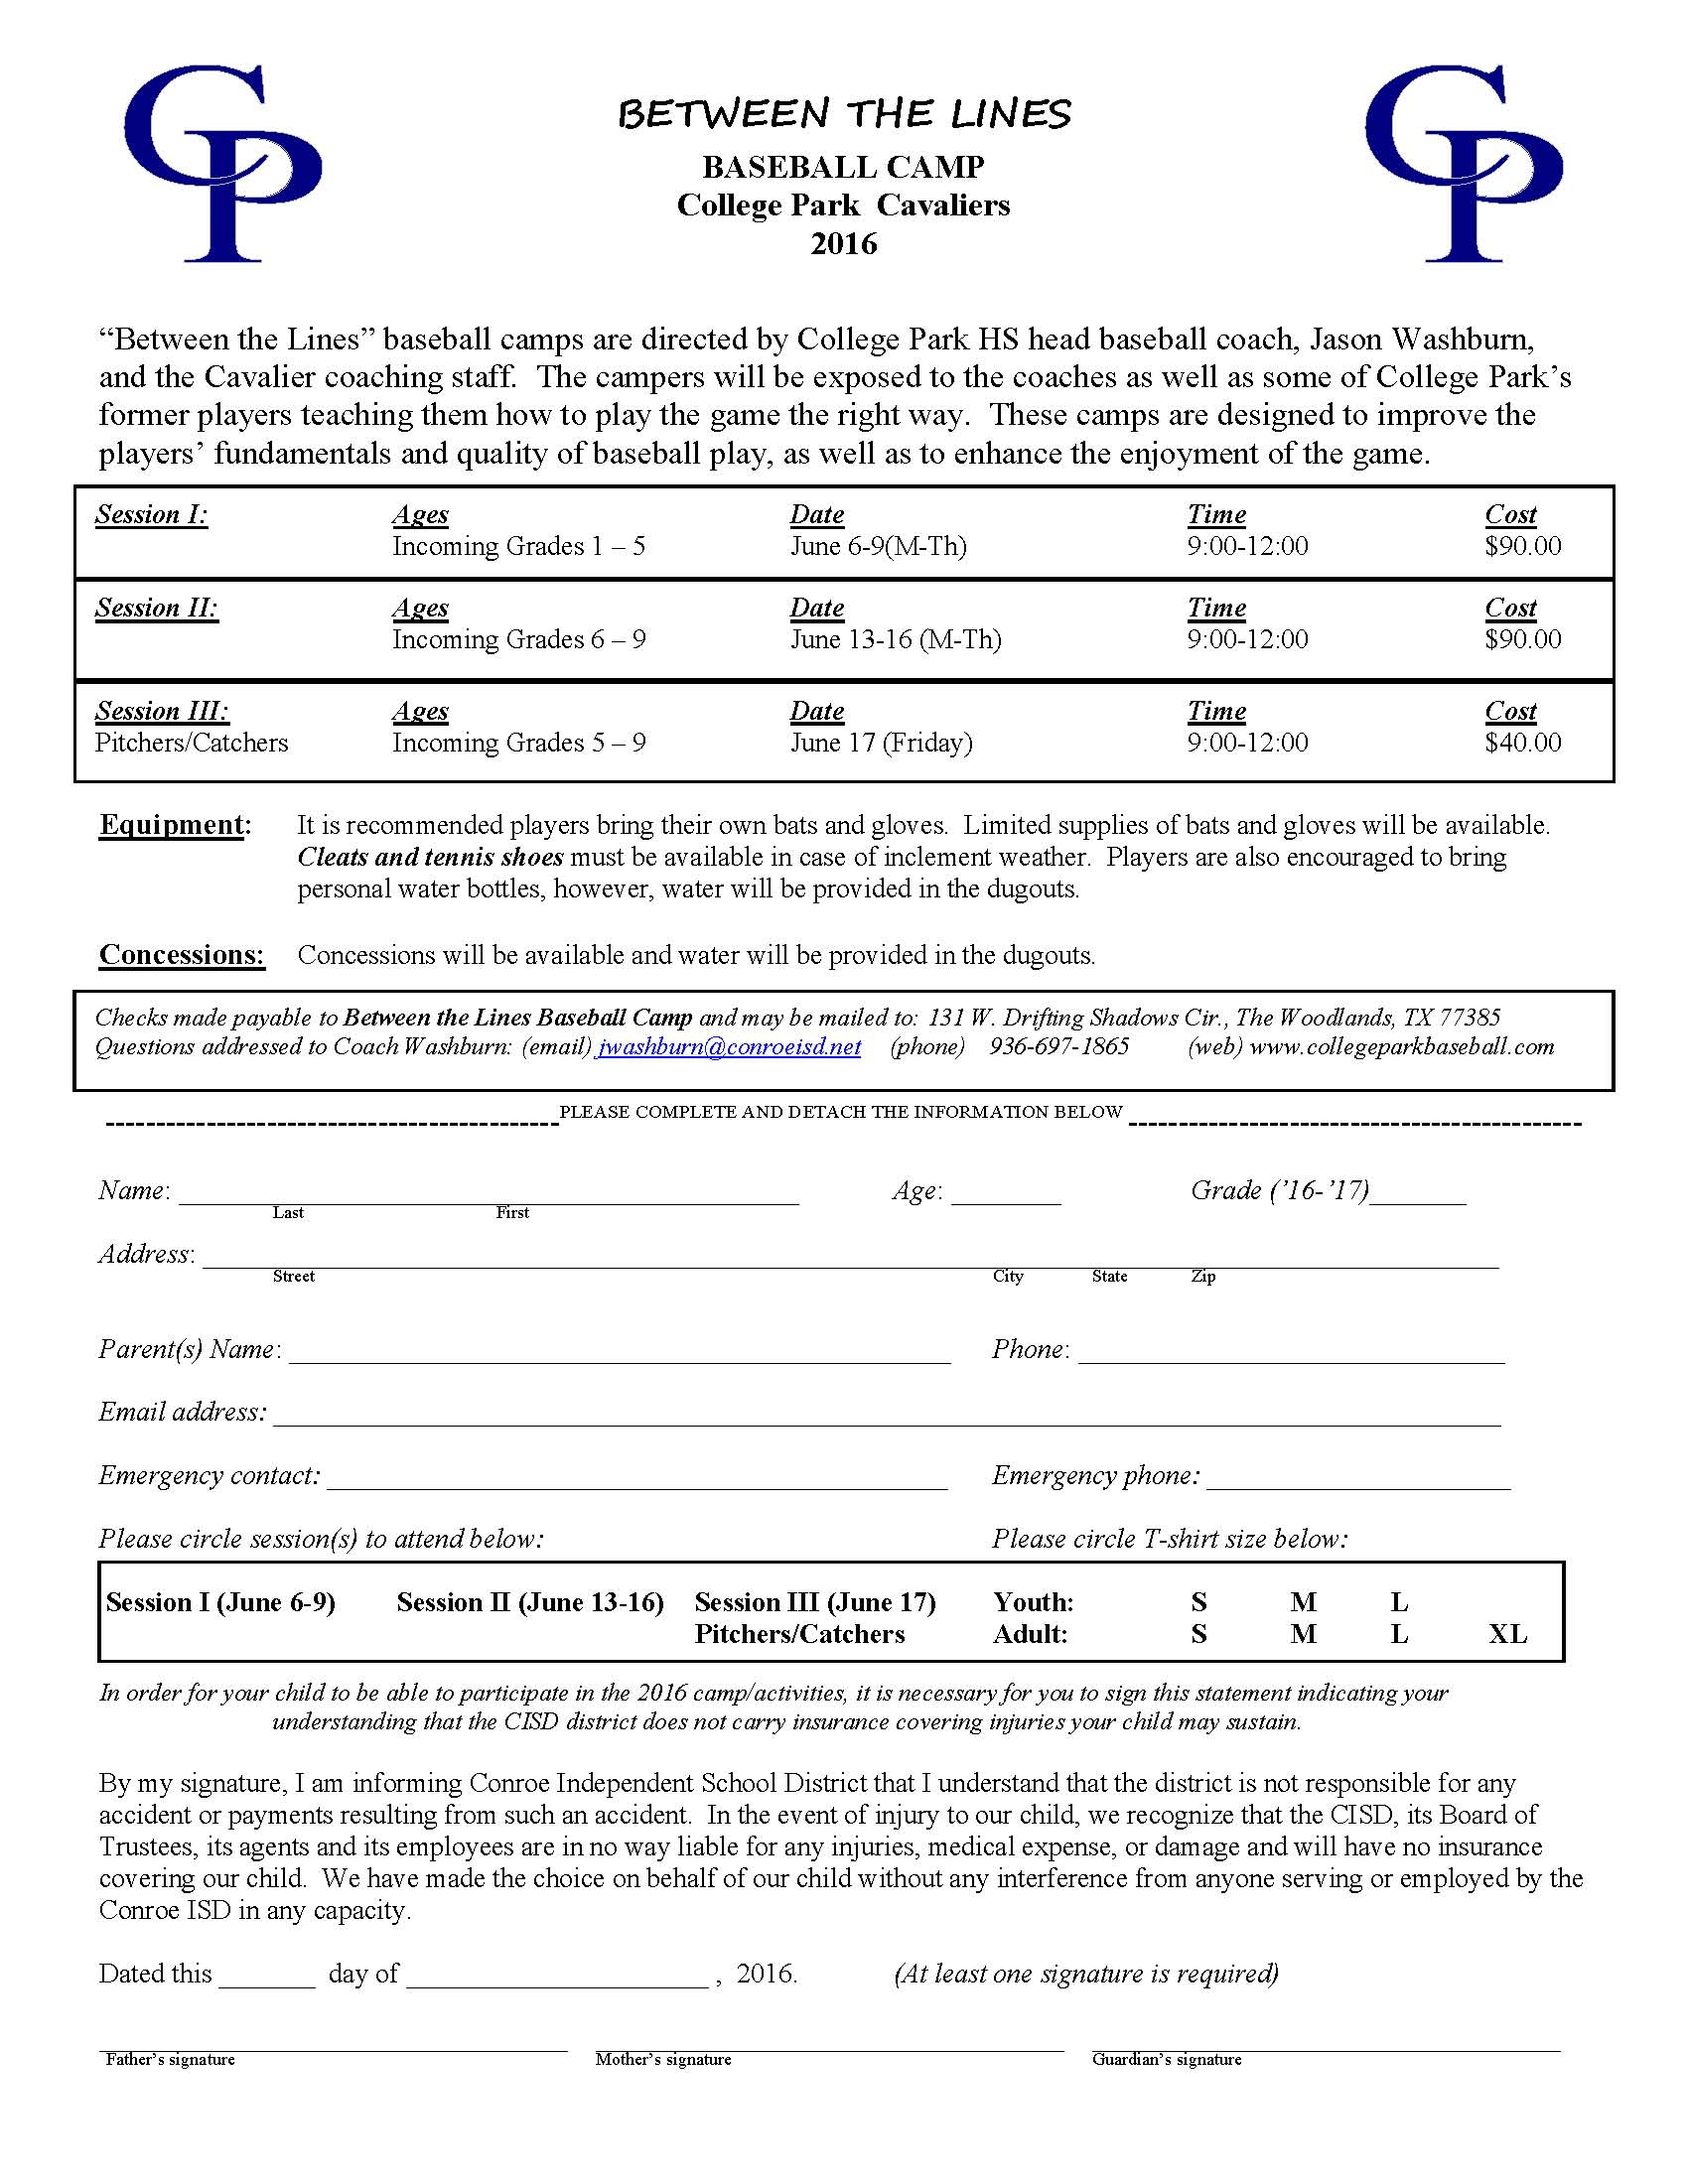 2016 College Park Baseball camp